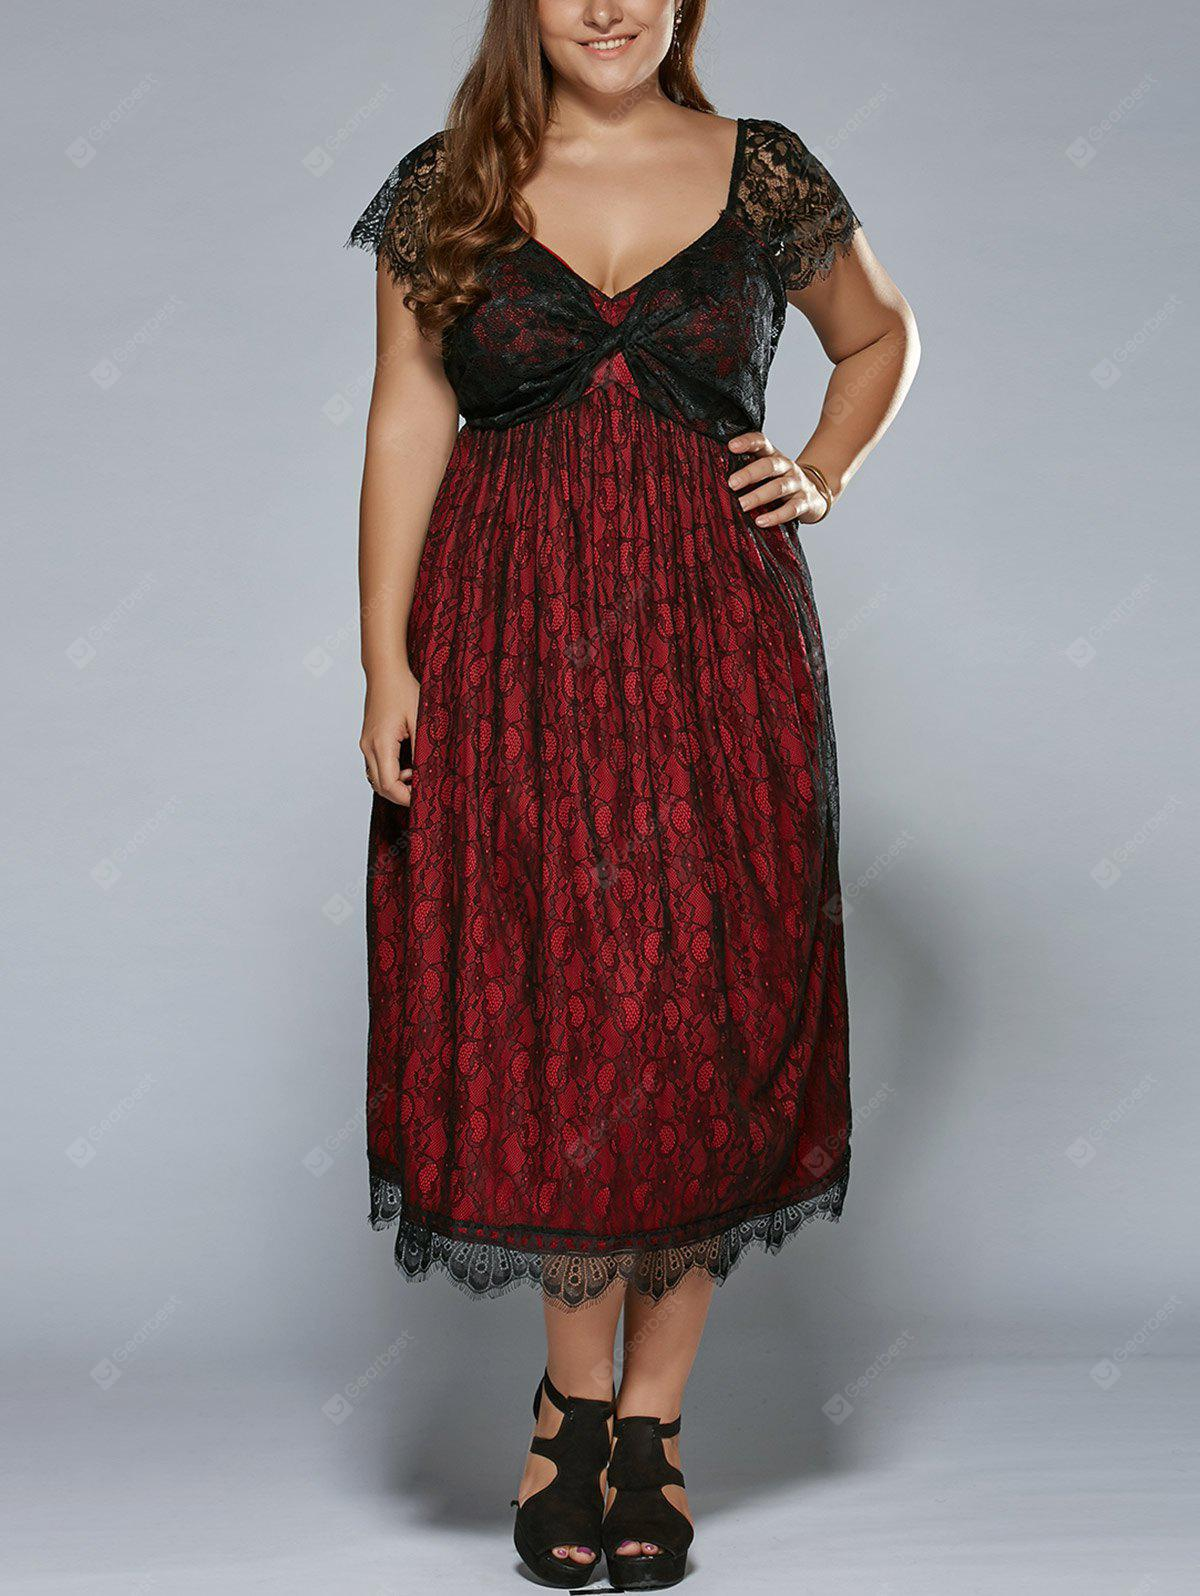 RED Plus Size Low Cut Empire Waist Lace Prom Dress